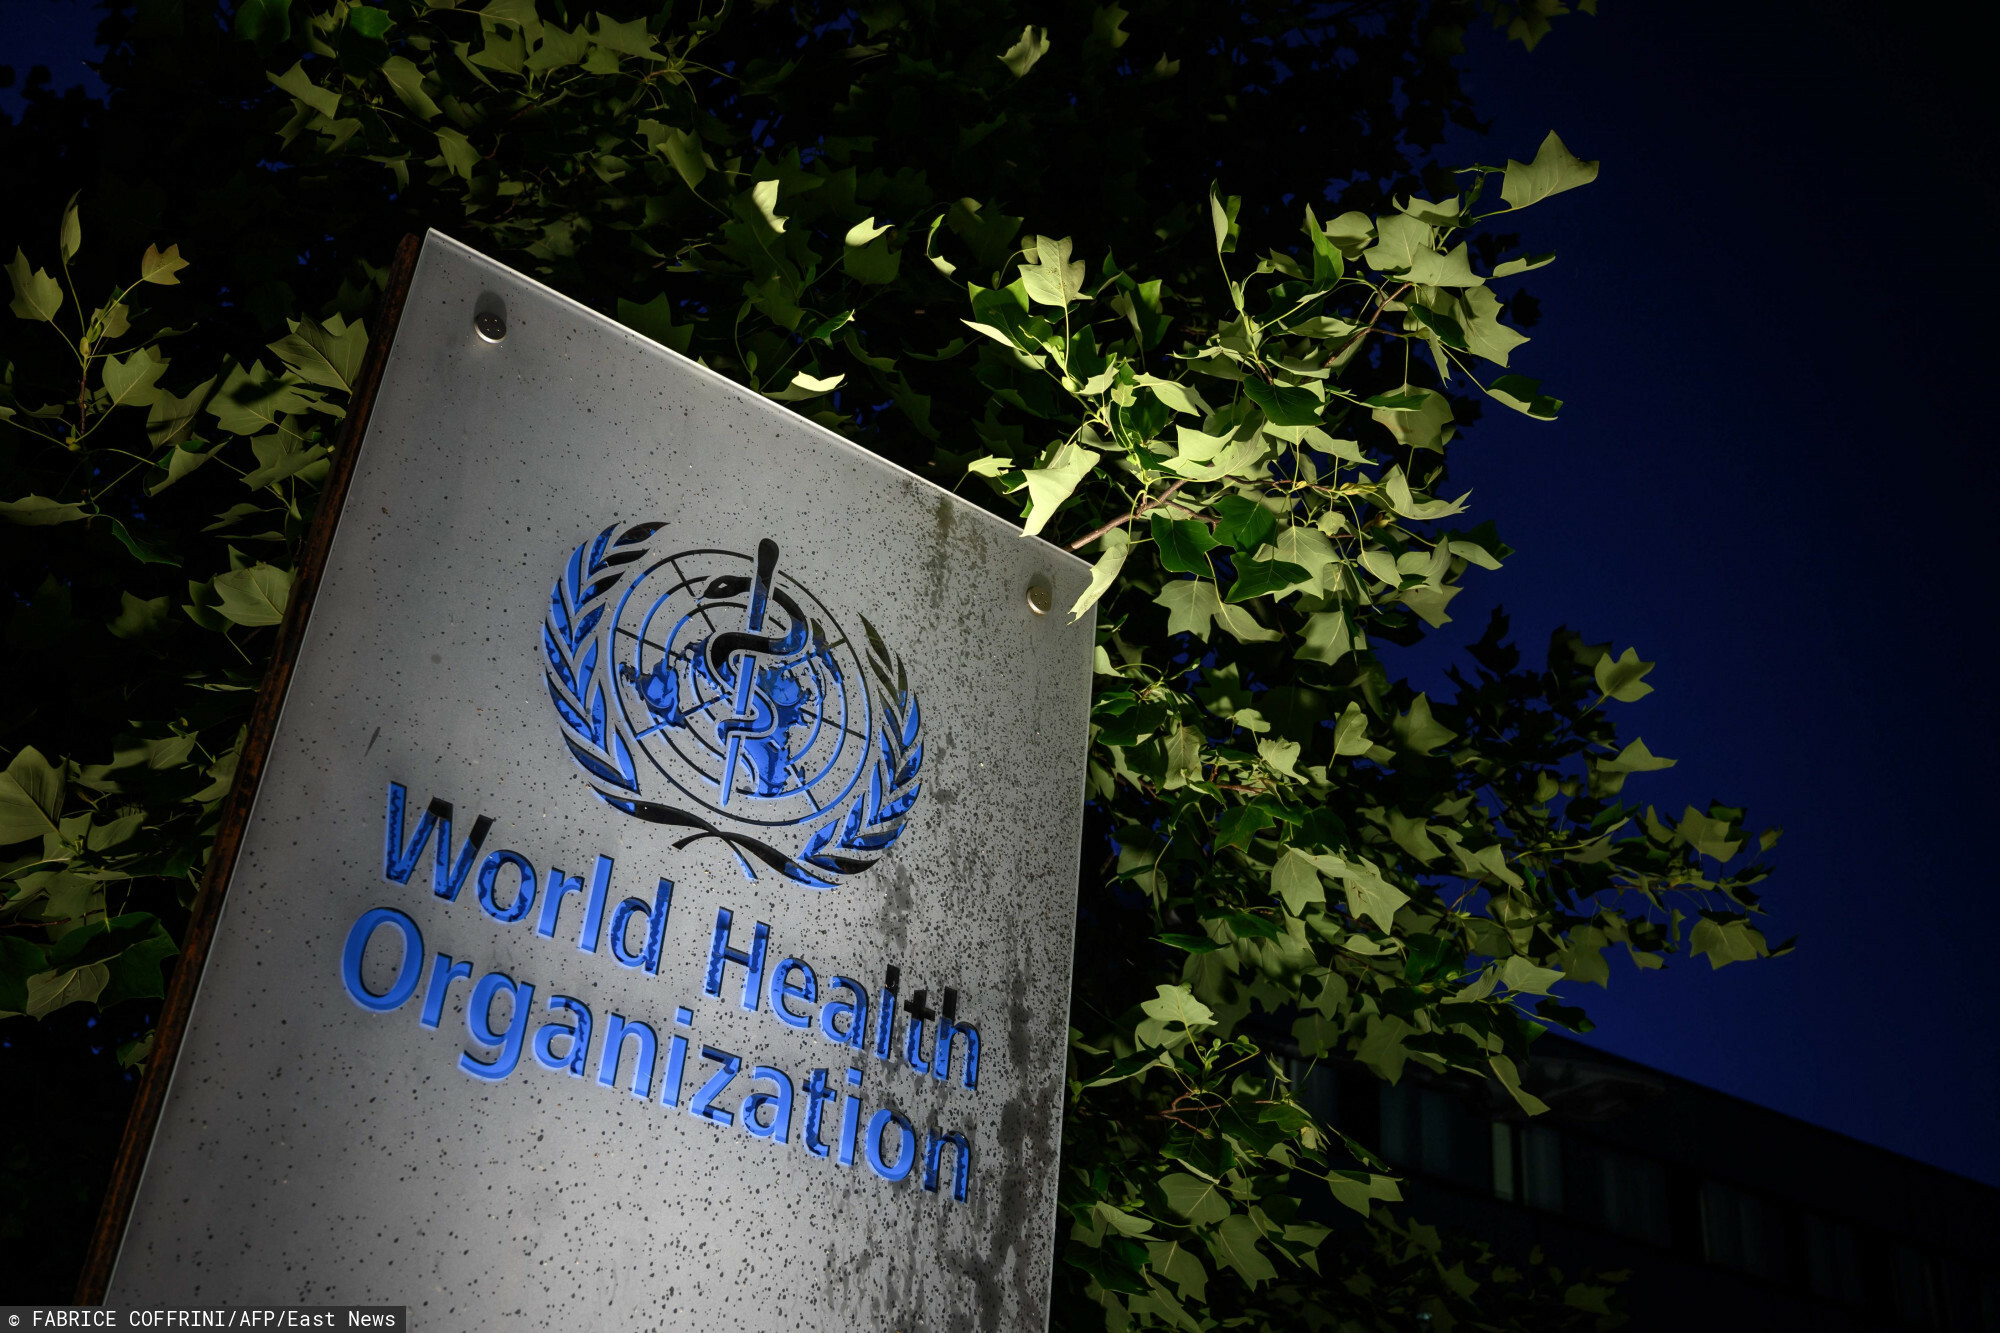 TOPSHOT - A photo taken in the late hours of May 29, 2020 shows a sign of the World Health Organization (WHO) at their headquarters in Geneva amid the COVID-19 outbreak, caused by the novel coronavirus. - President Donald Trump said May 29, 2020, he was breaking off US ties with the World Health Organization, which he says failed to do enough to combat the initial spread of the novel coronavirus. (Photo by Fabrice COFFRINI / AFP)